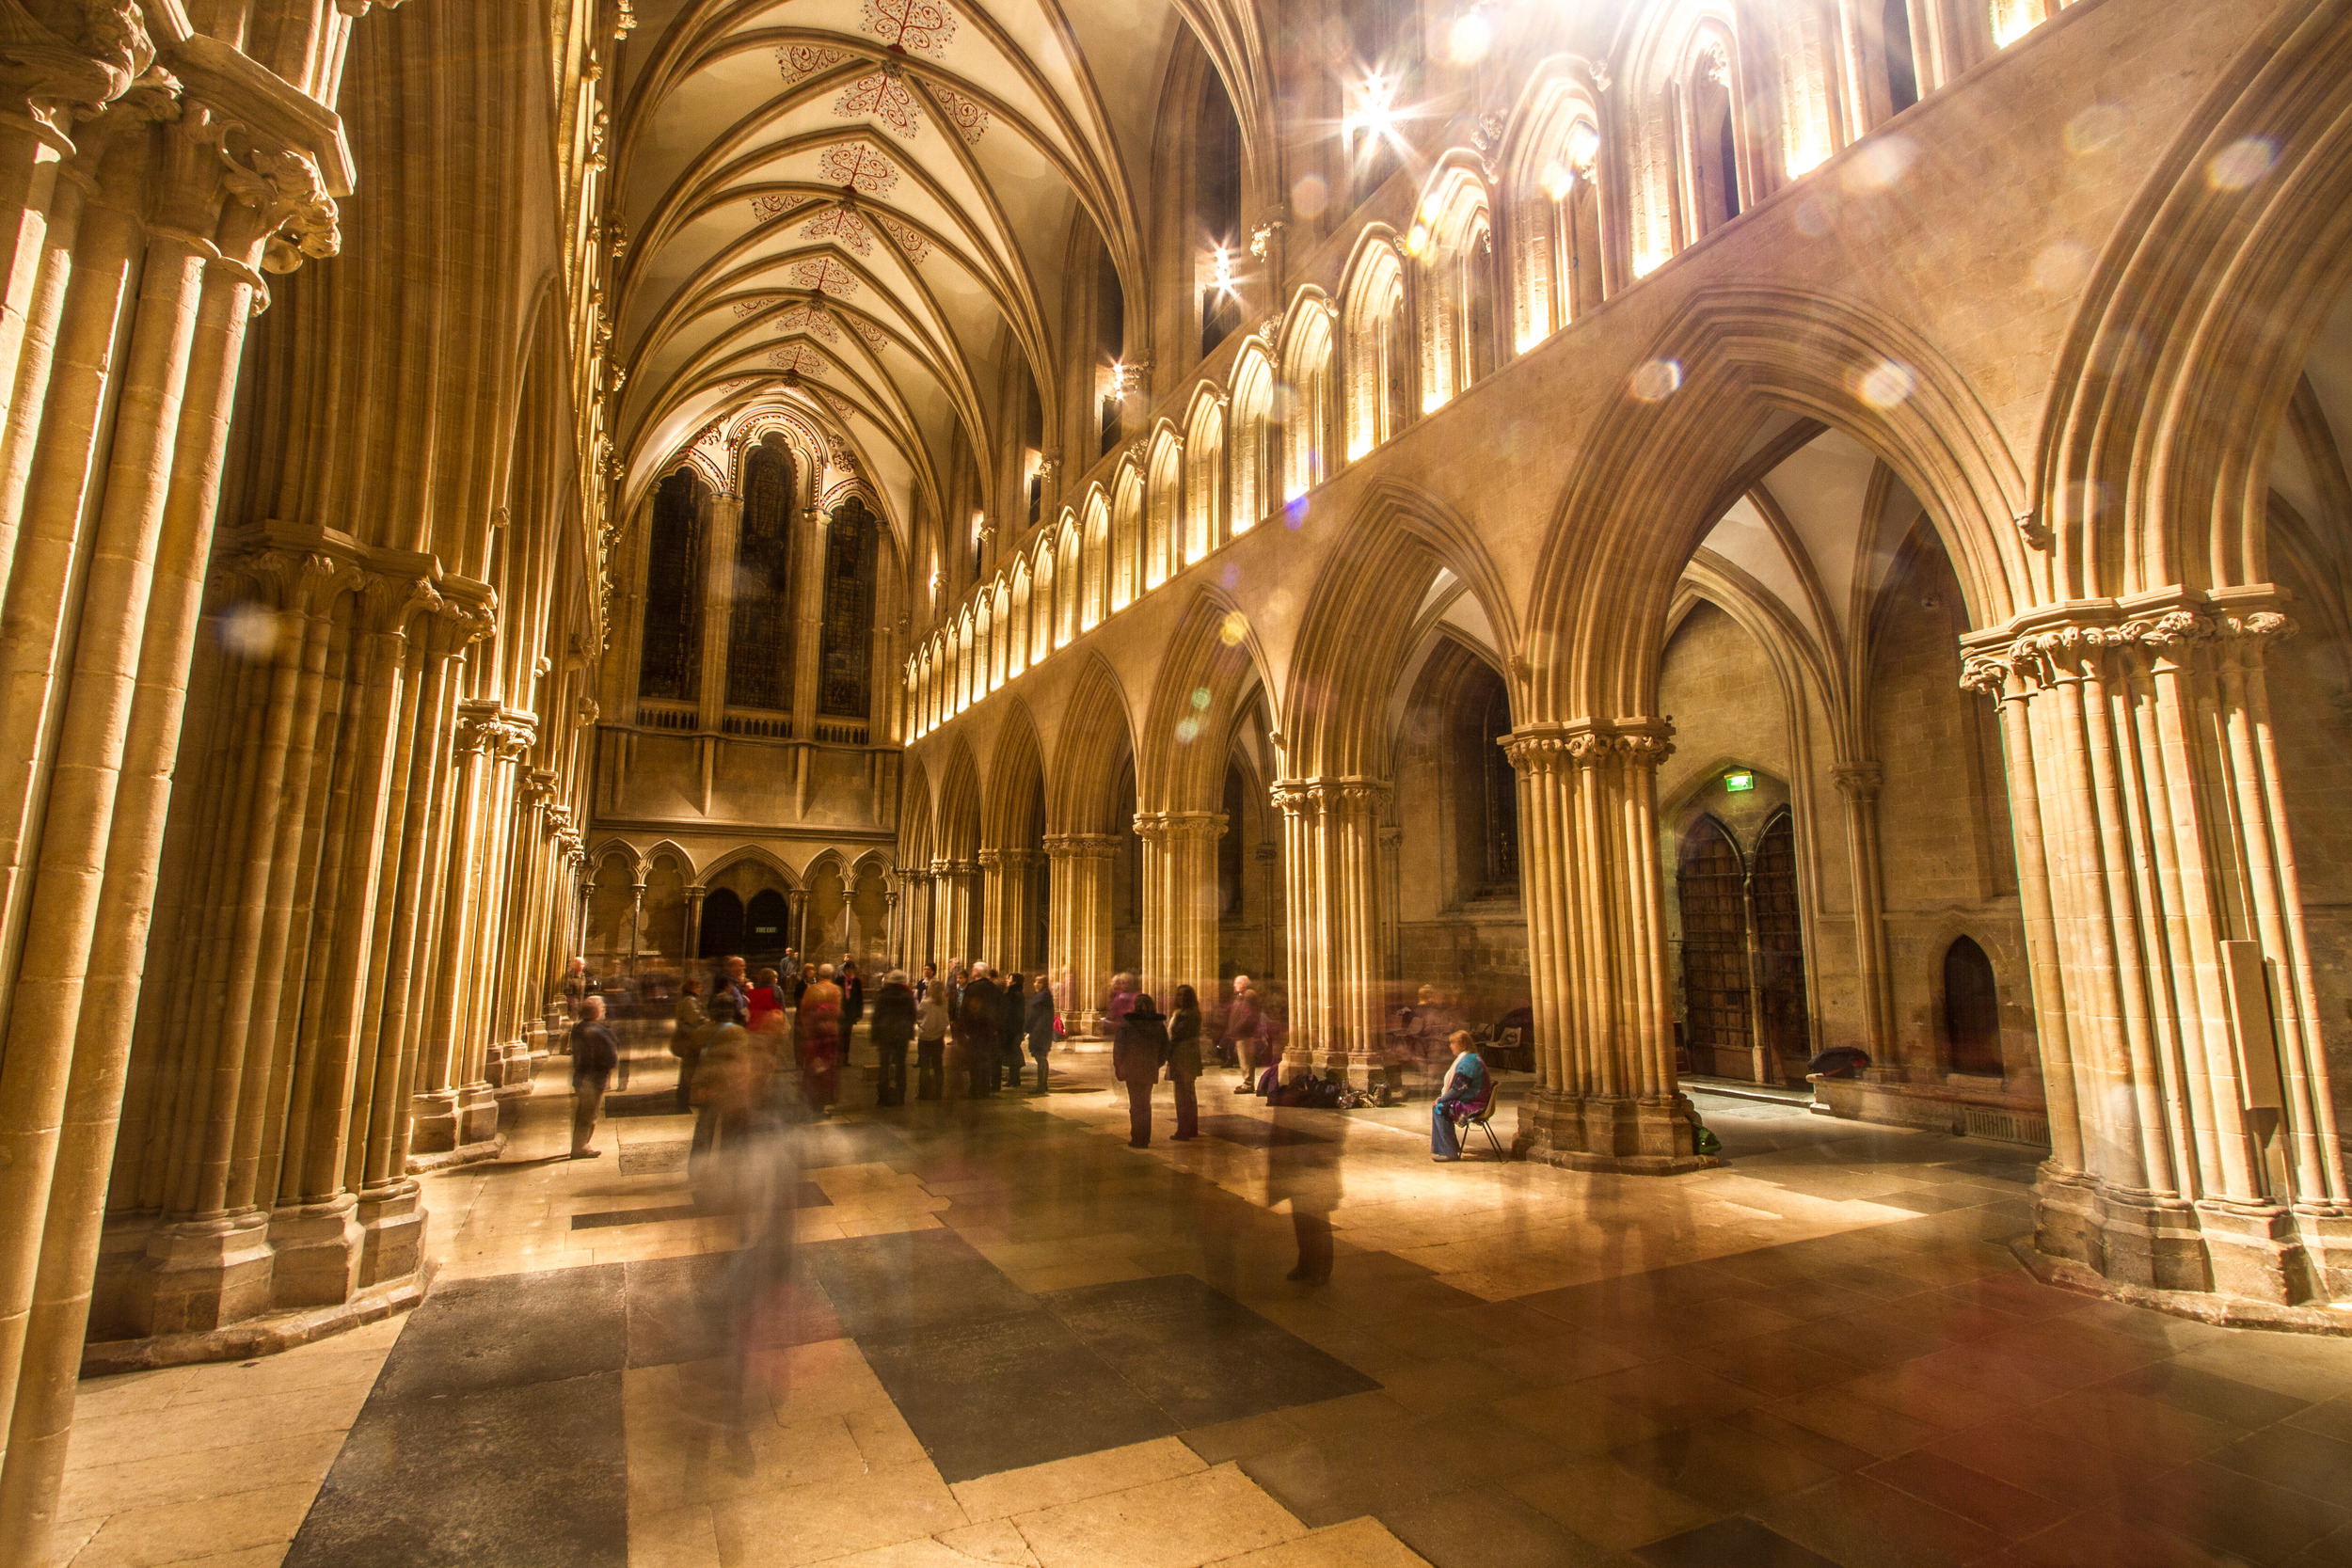 Wells Cathedral emptied of furniture becomes an entirely different narrative space. Image by John Dawson